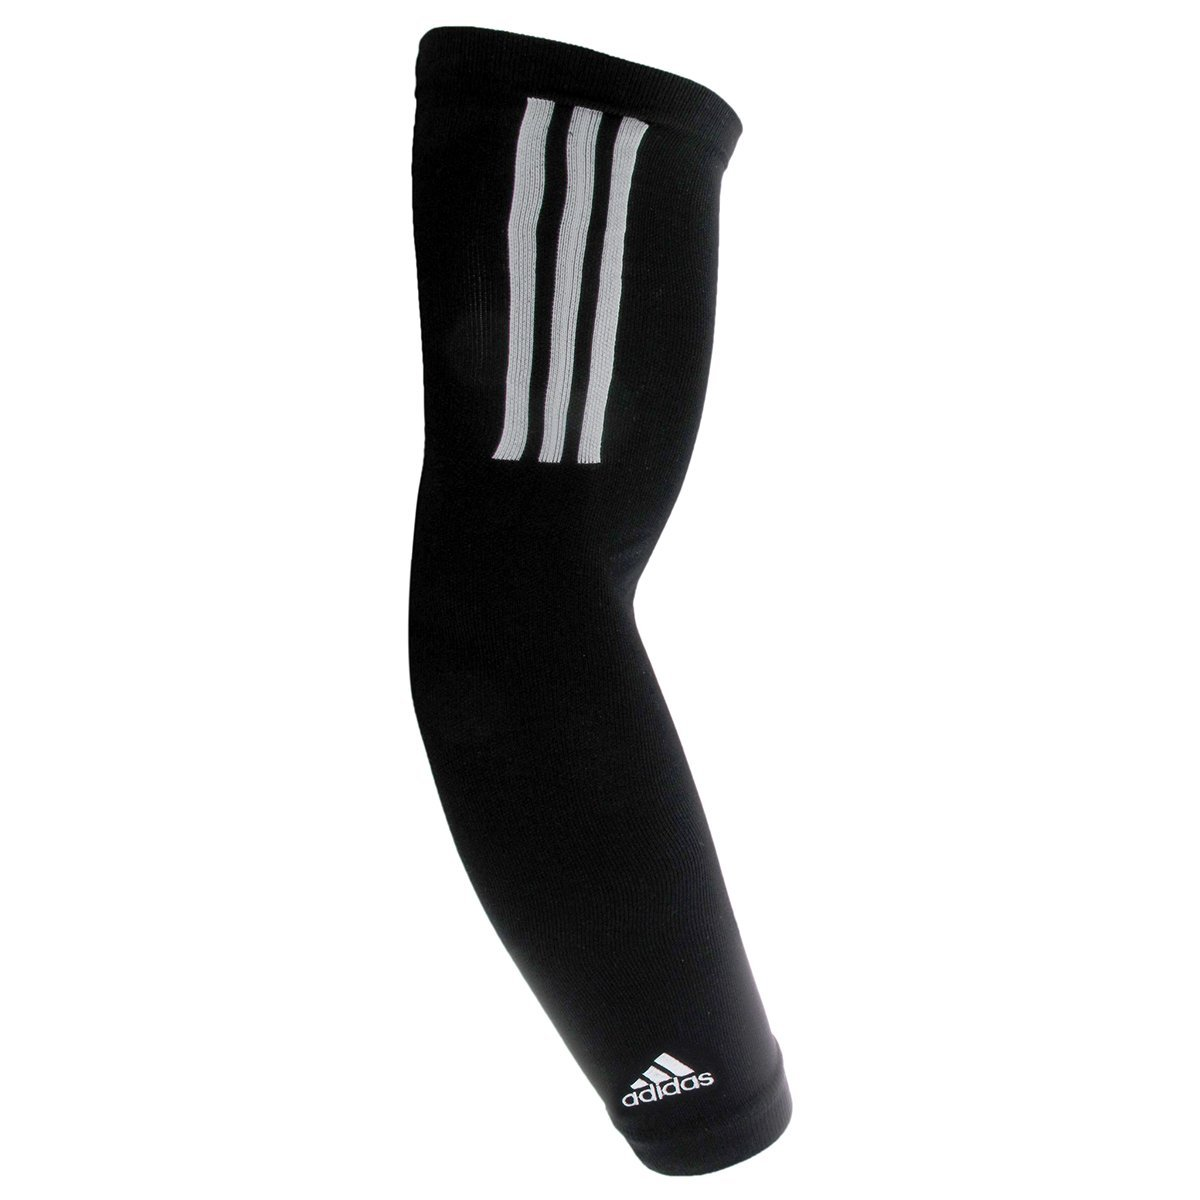 Amazon.com : adidas Compression Arm Sleeve : Sports Wristbands